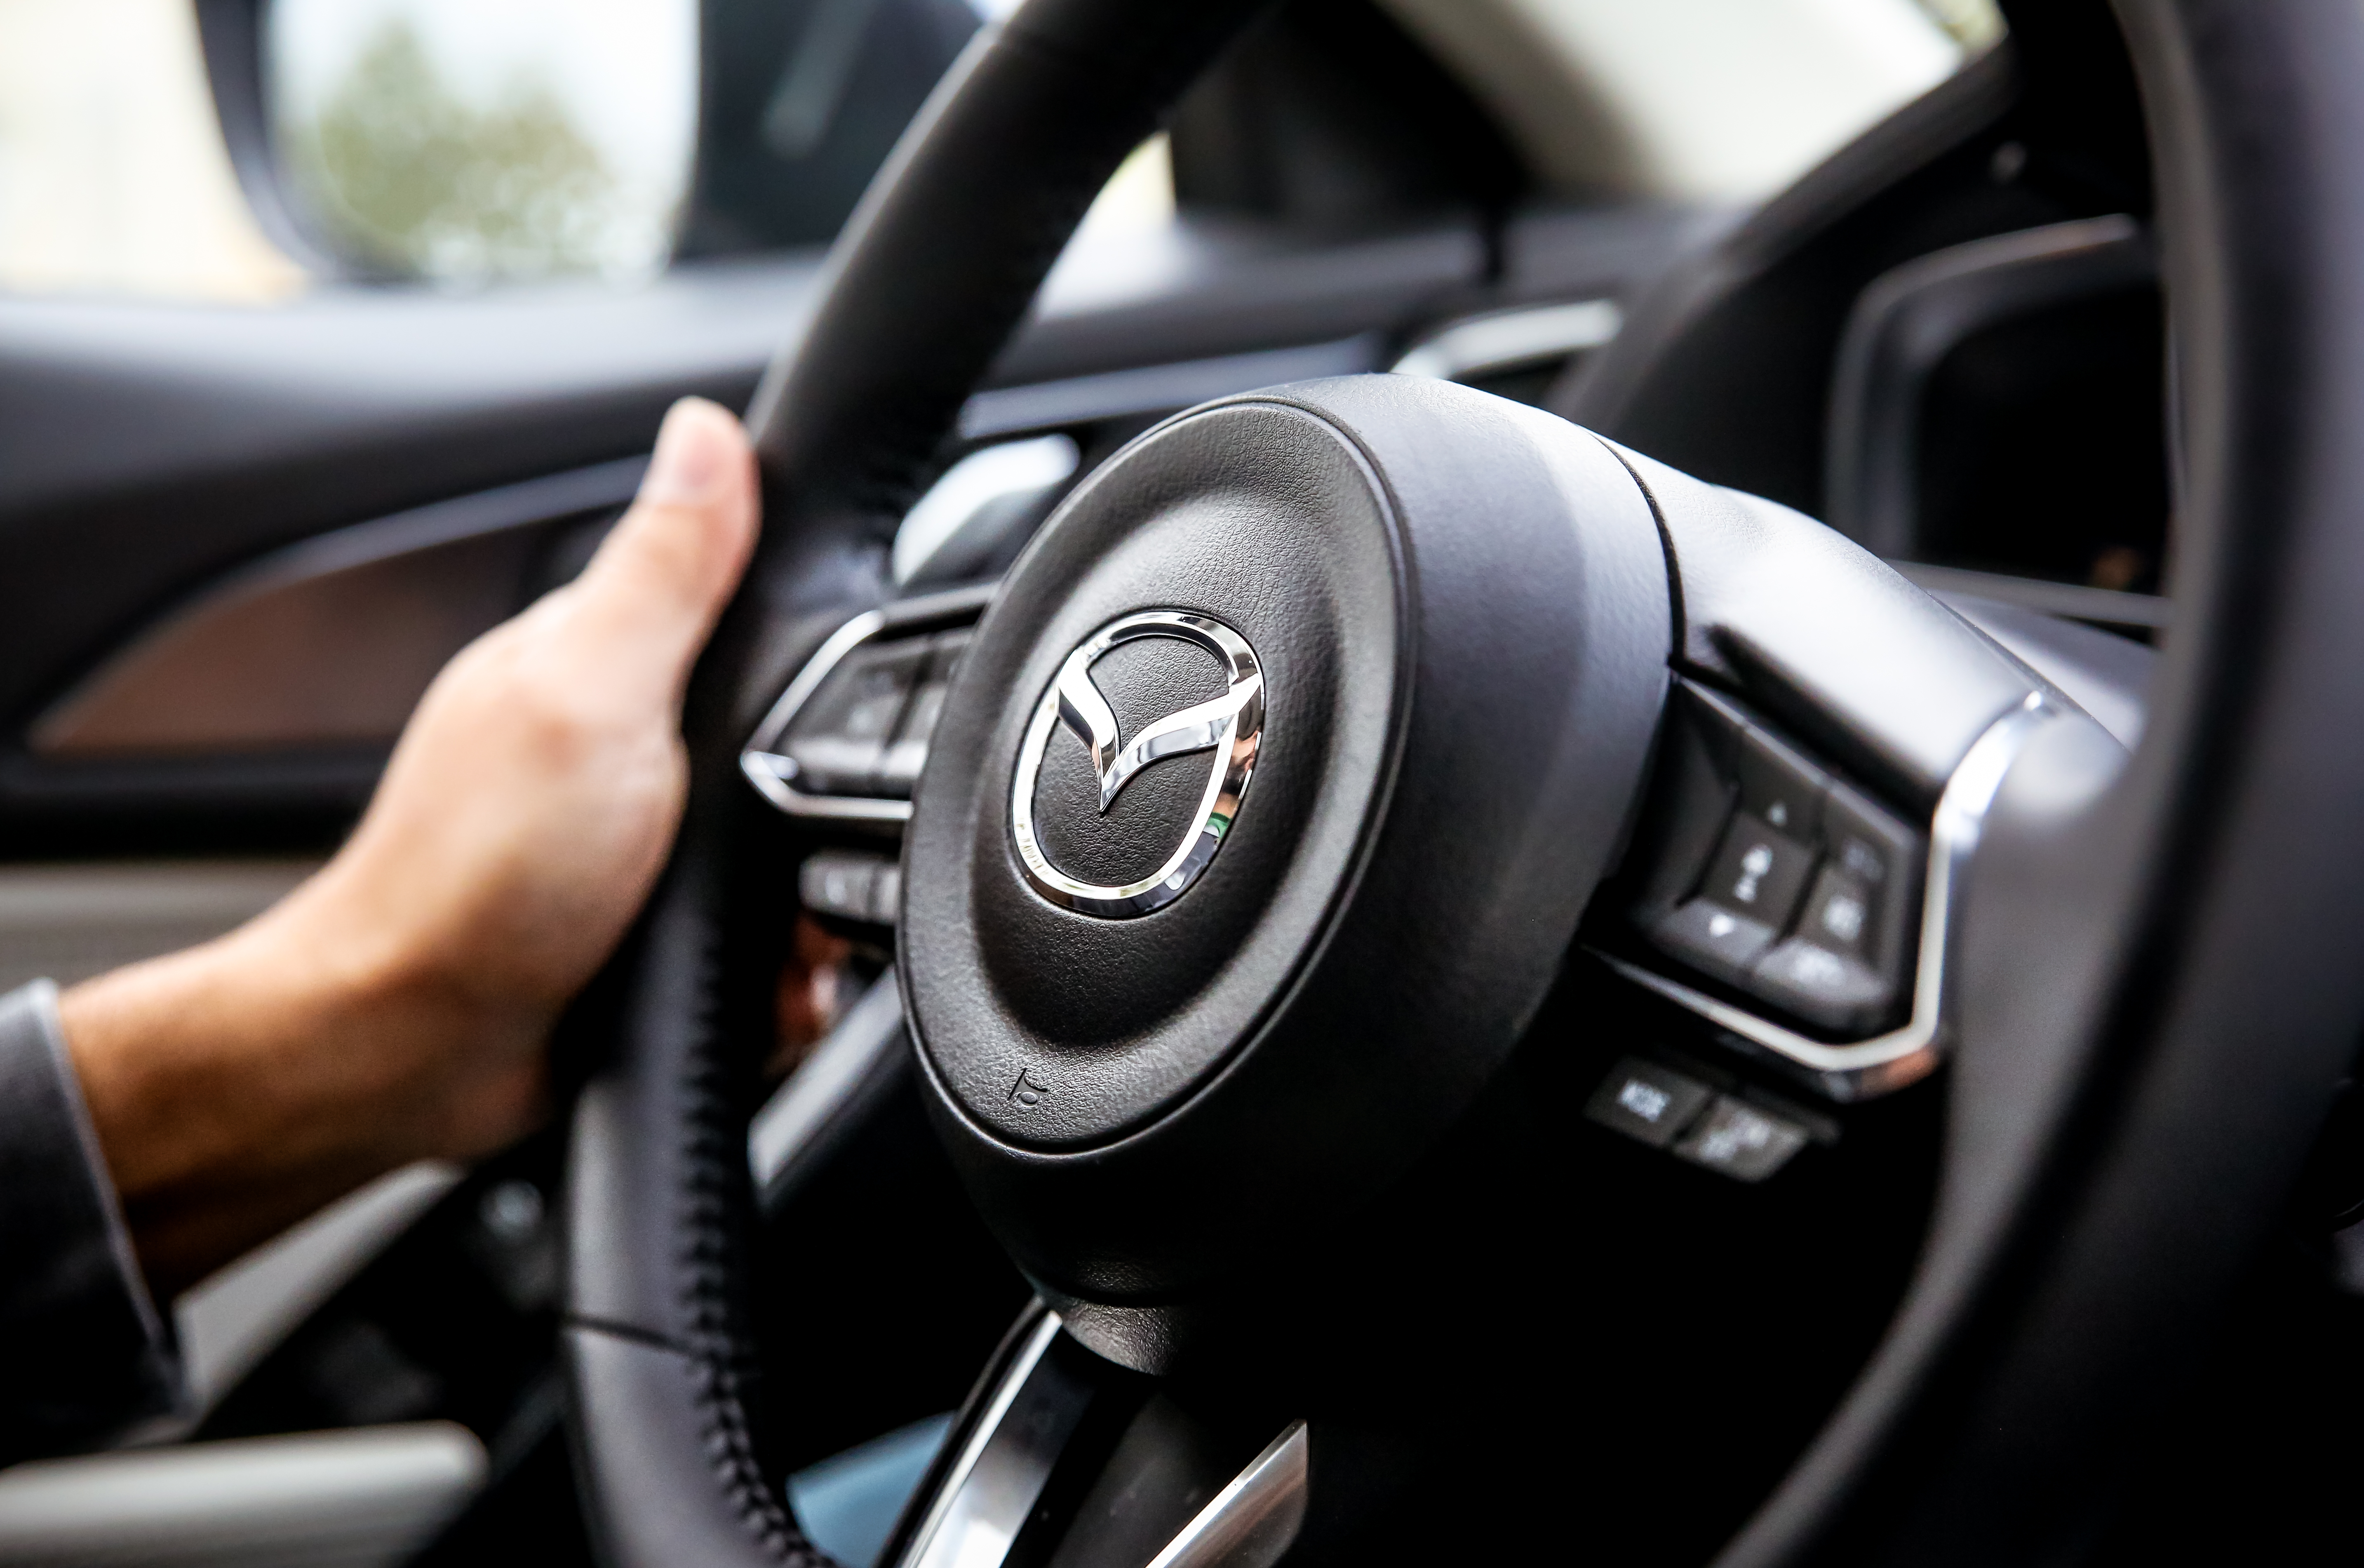 2017 mazda3 review raising the wild rh raising the wild com Driving for Thanksgiving driving manual car for the first time